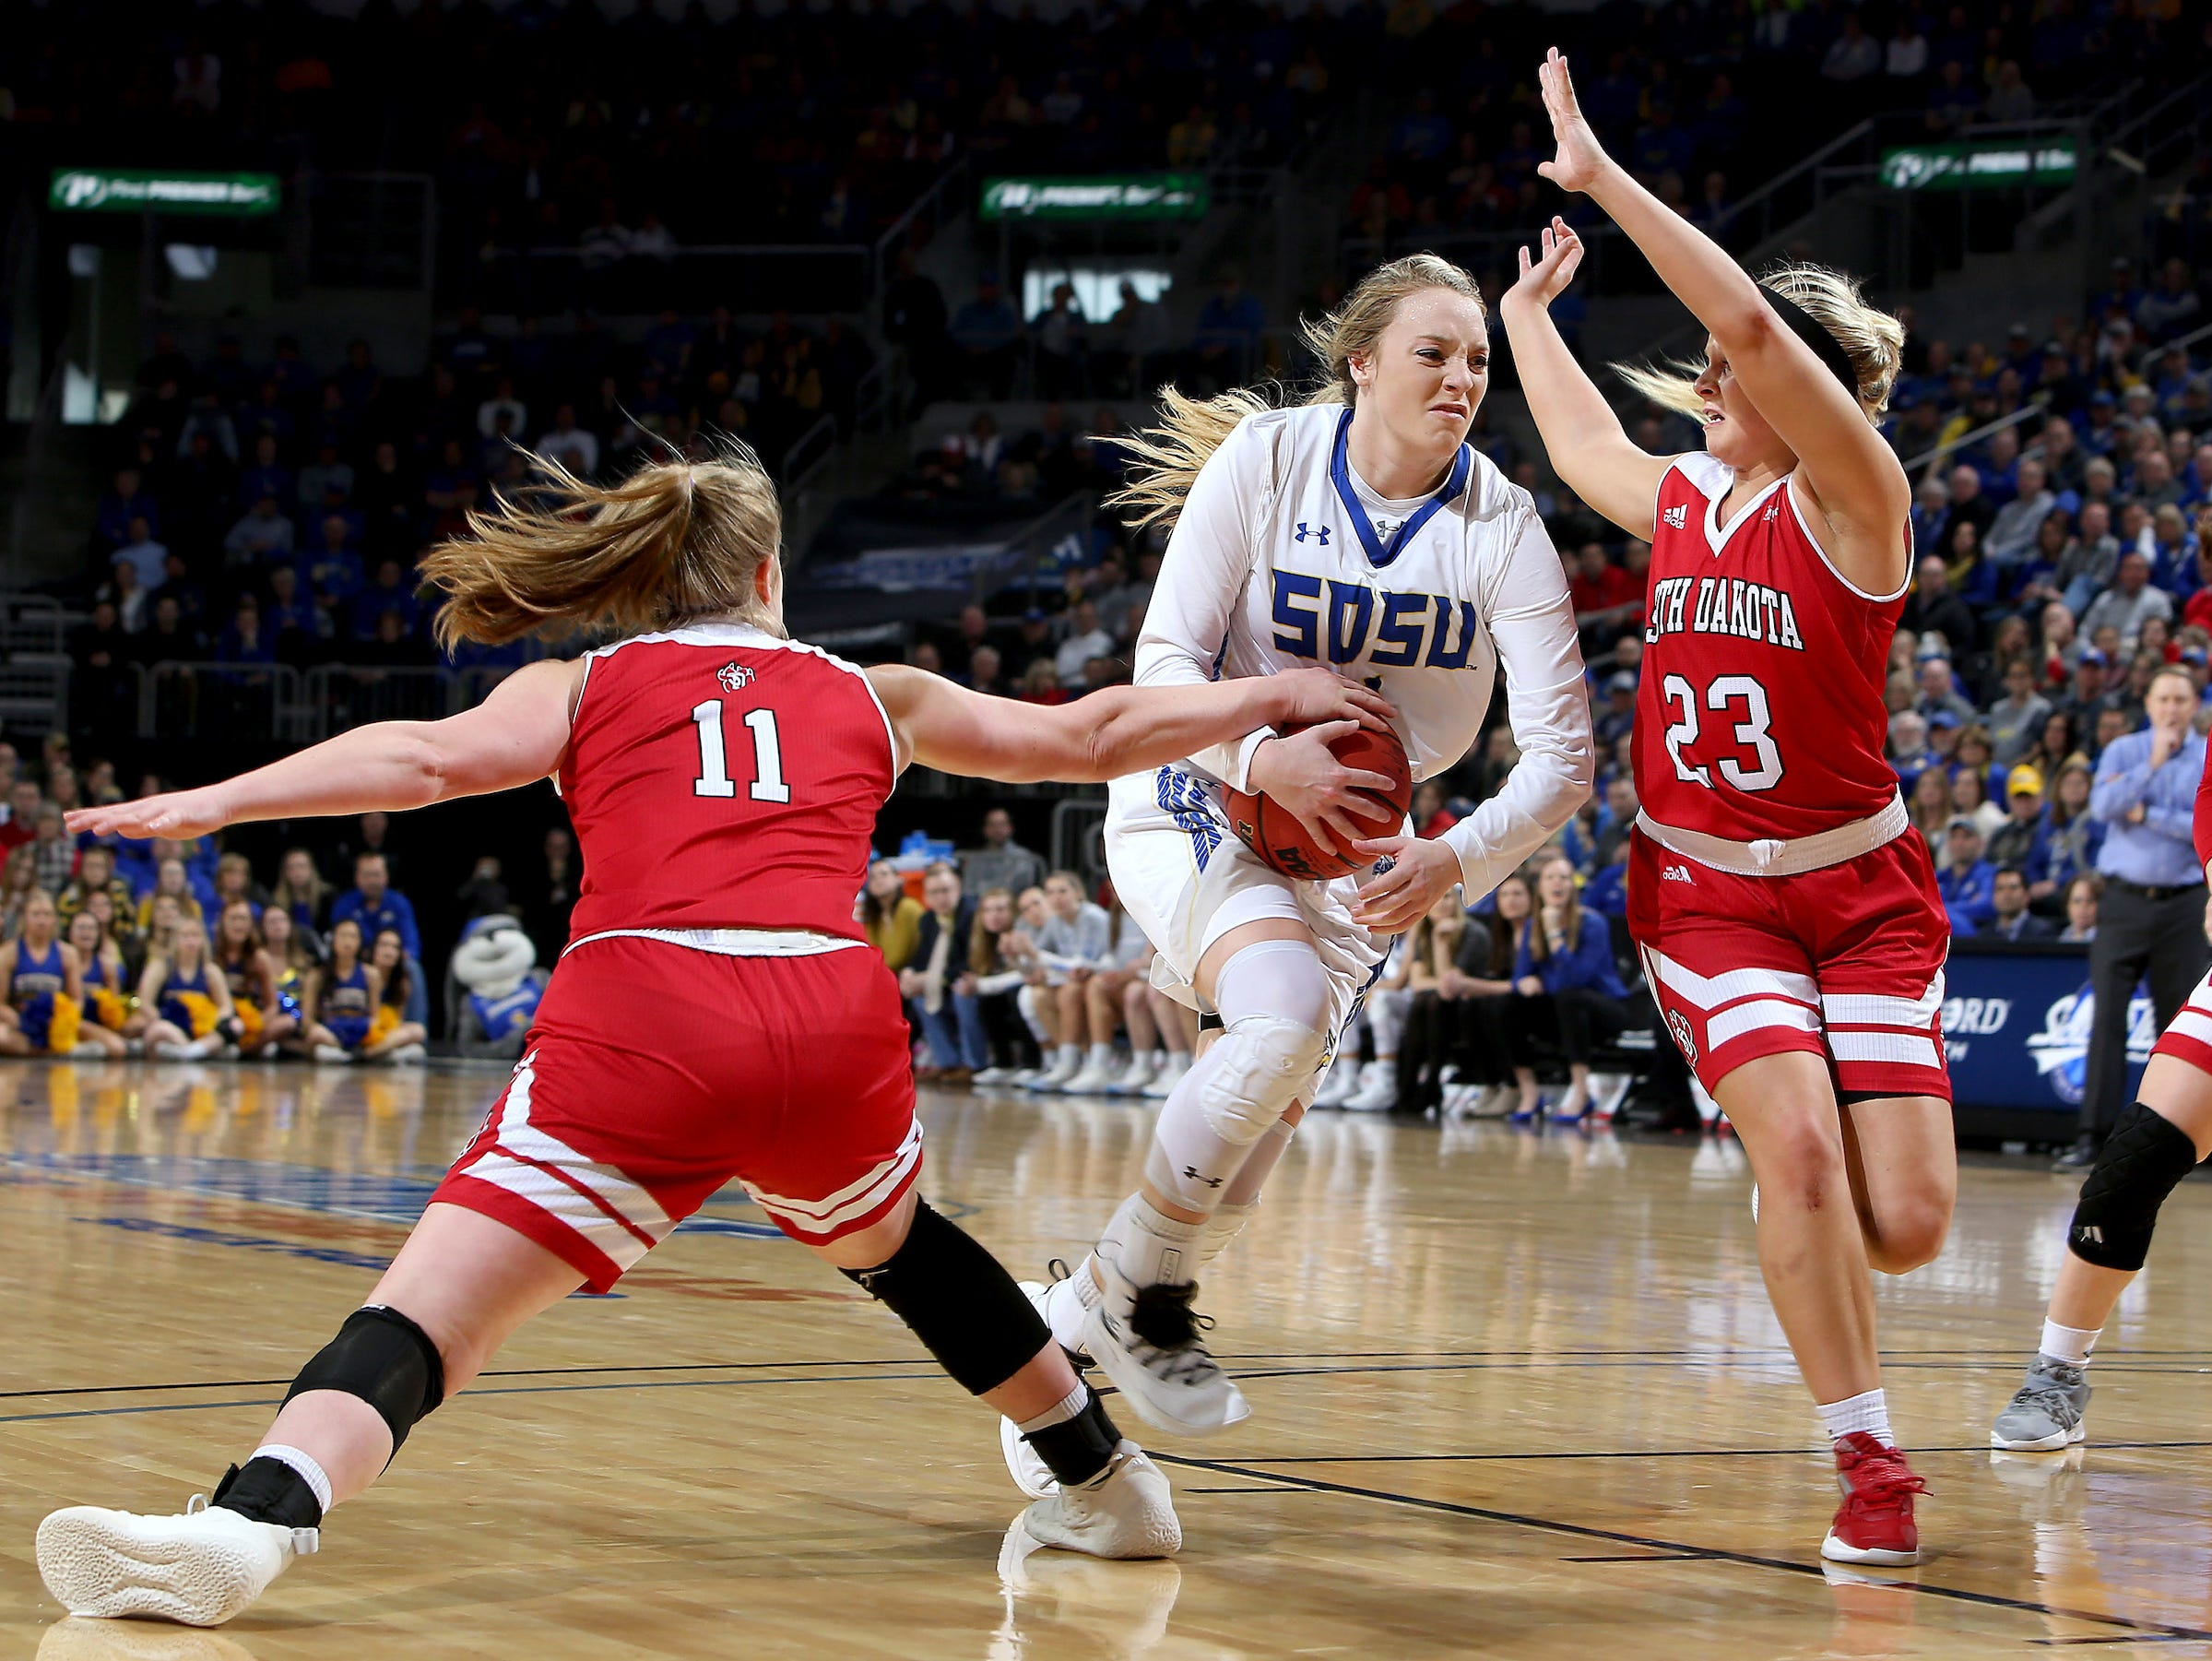 SIOUX FALLS, SD - MARCH 11: Monica Arens #11 from South Dakota gets a hand on the ball possessed by Madison Guebert #11 from South Dakota State at the 2019 Summit League Basketball Tournament at the Denny Sanford Premier Center in Sioux Falls. (Photo by Dave Eggen/Inertia)